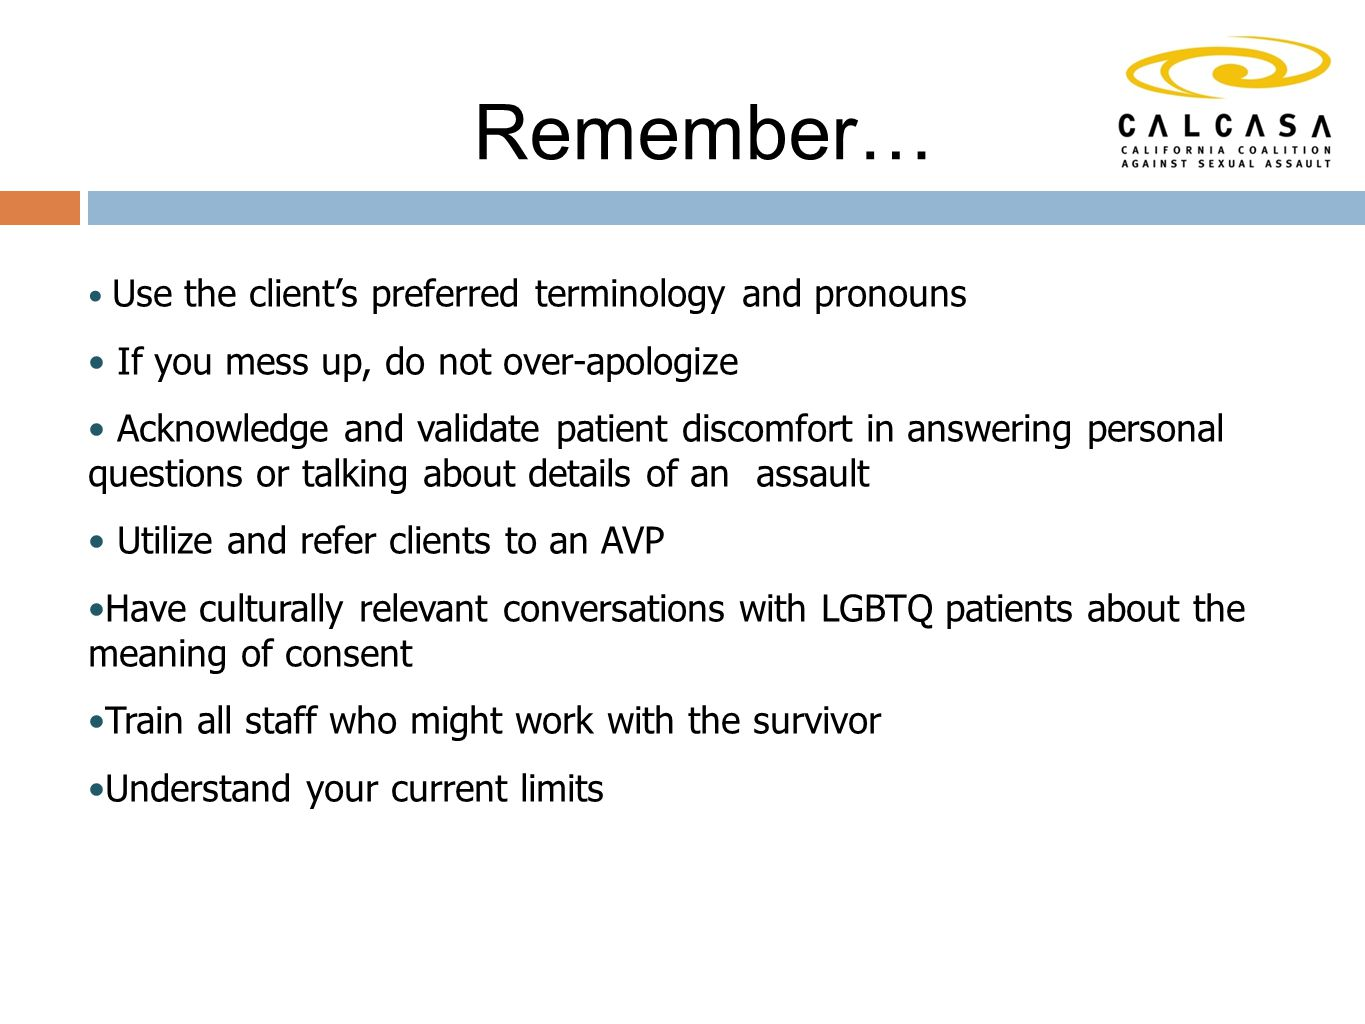 Remember… Use the client's preferred terminology and pronouns If you mess up, do not over-apologize Acknowledge and validate patient discomfort in answering personal questions or talking about details of an assault Utilize and refer clients to an AVP Have culturally relevant conversations with LGBTQ patients about the meaning of consent Train all staff who might work with the survivor Understand your current limits